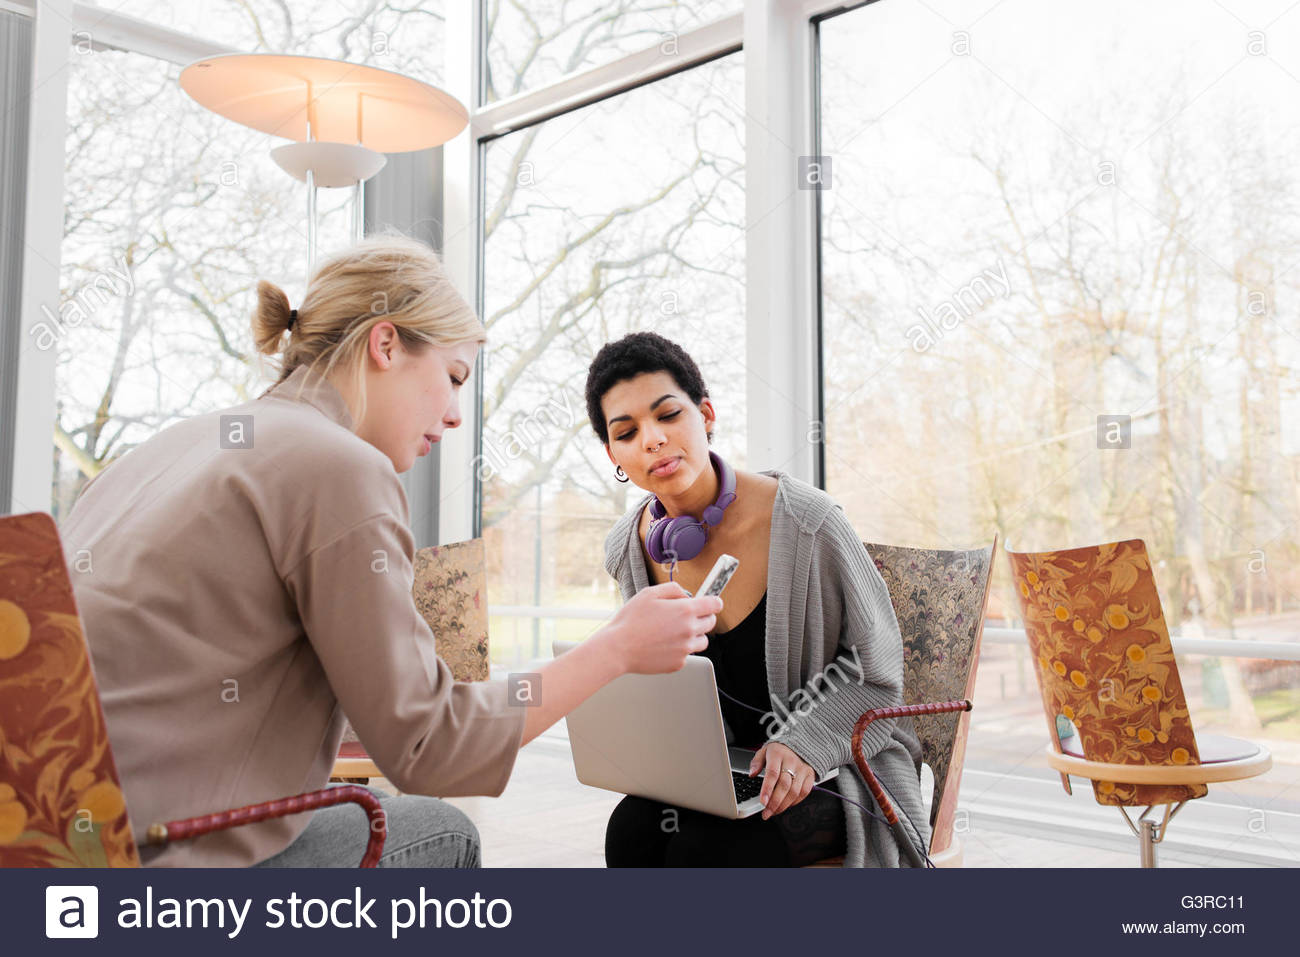 Sweden, Two women using smartphone - Stock Image